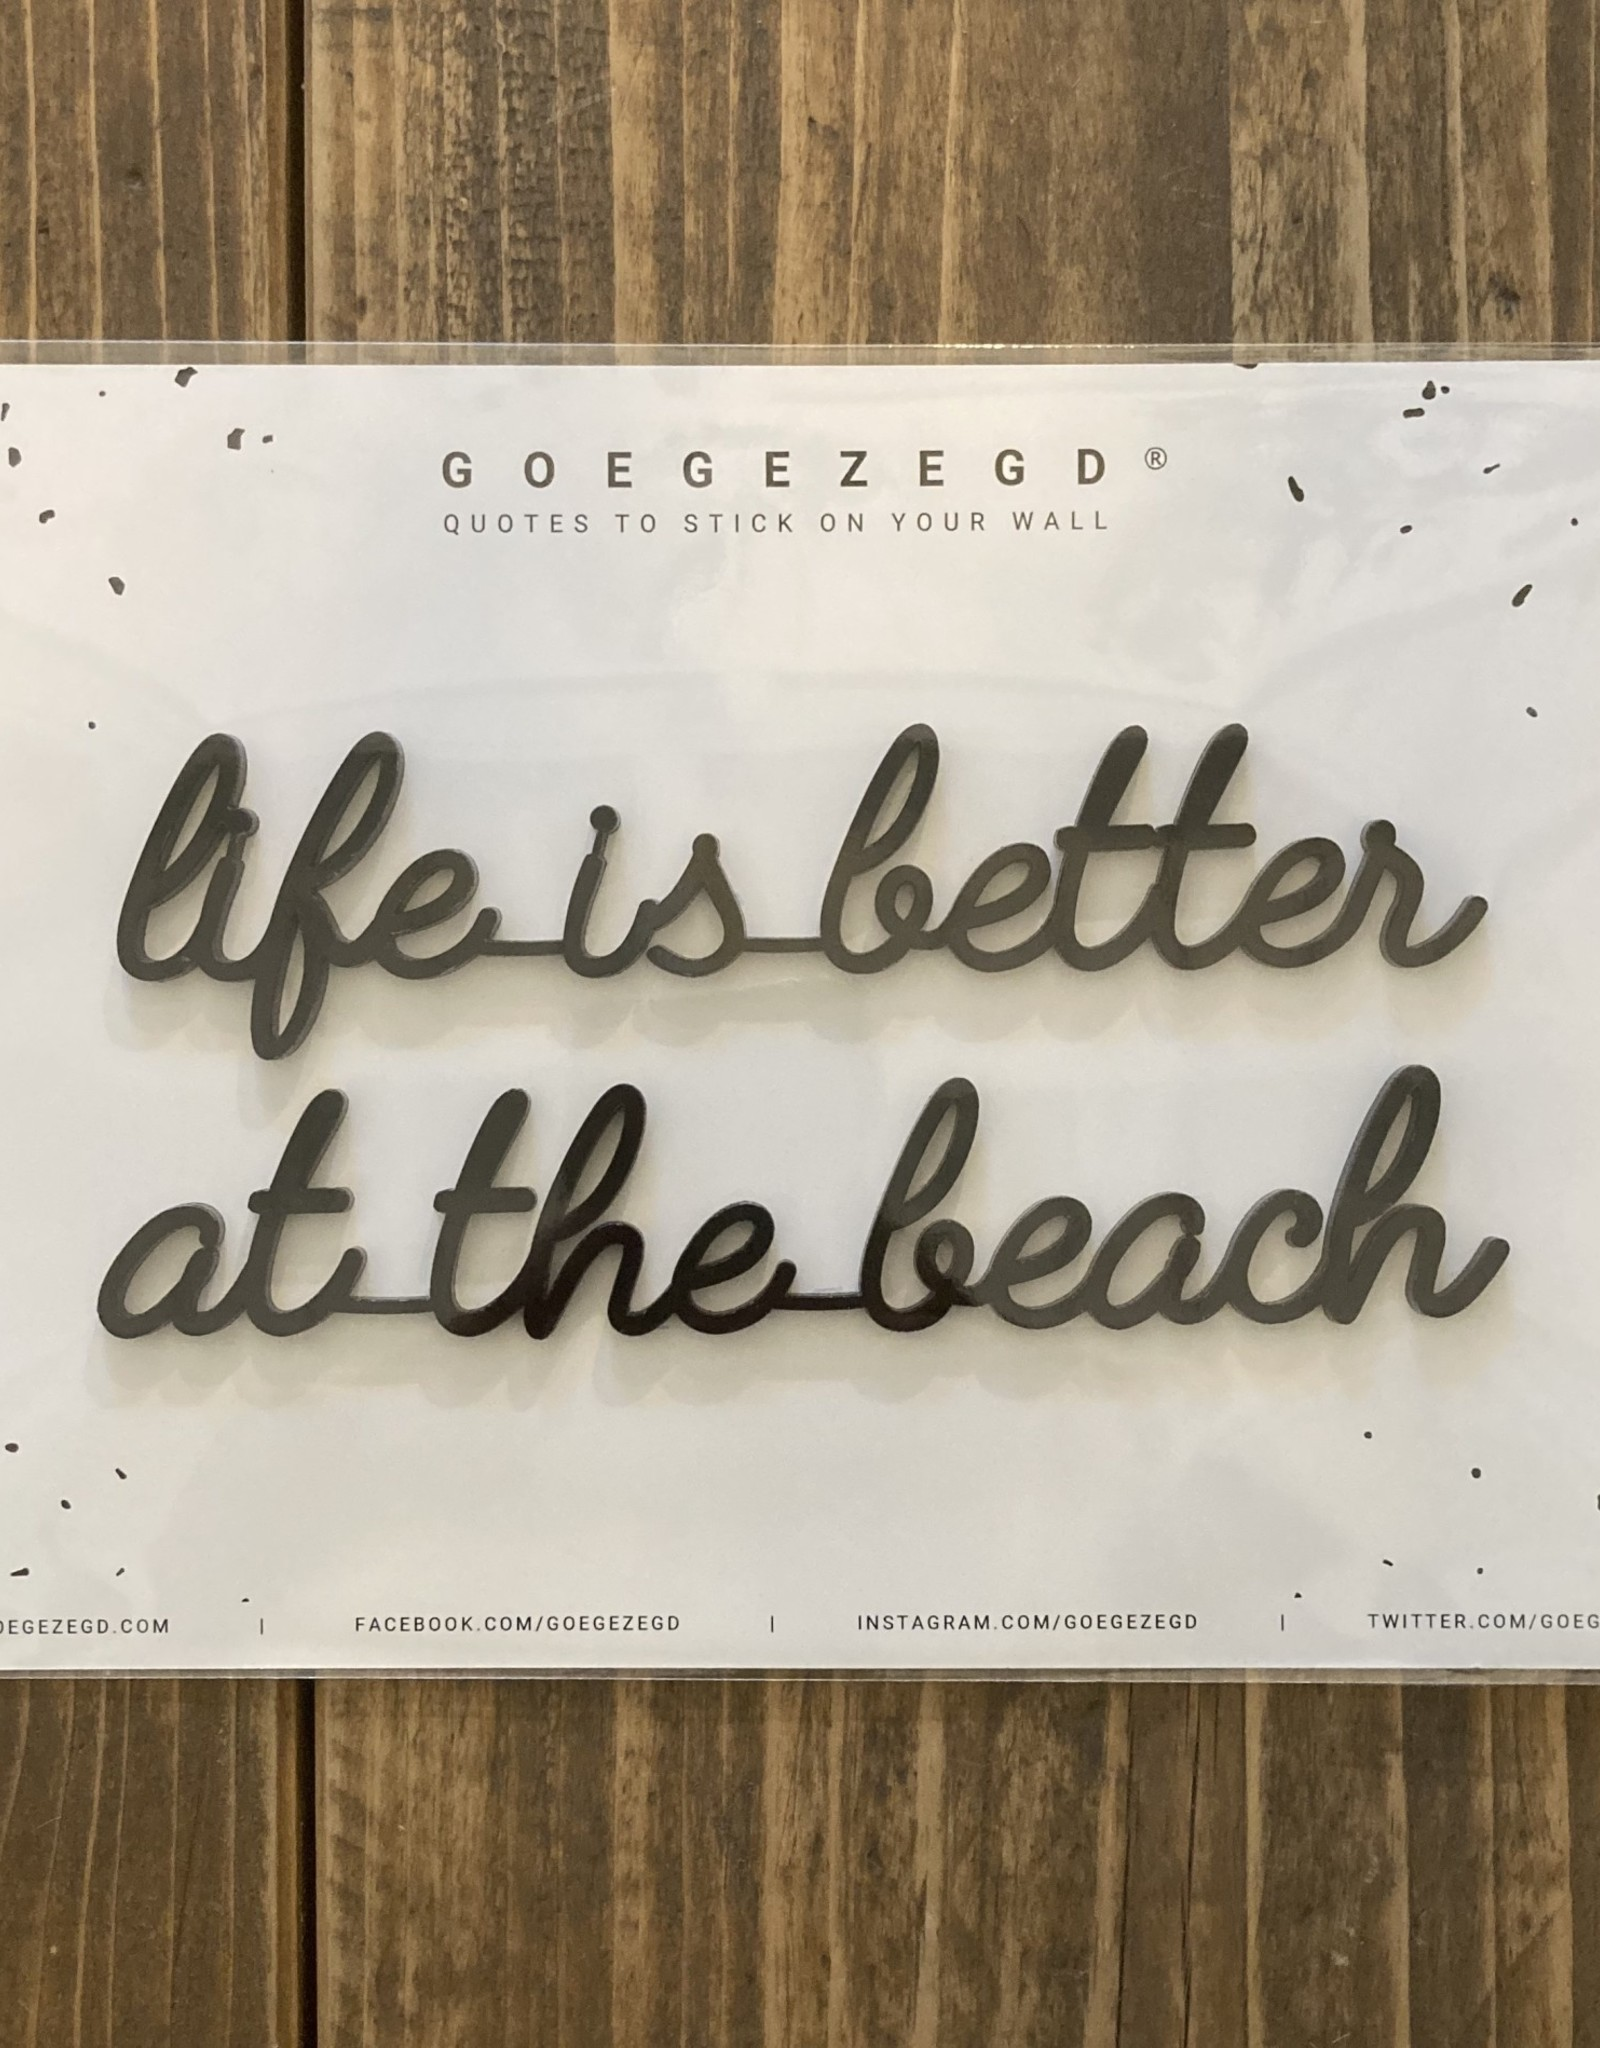 Goegezegd Goegezegd - Life is better at the beach